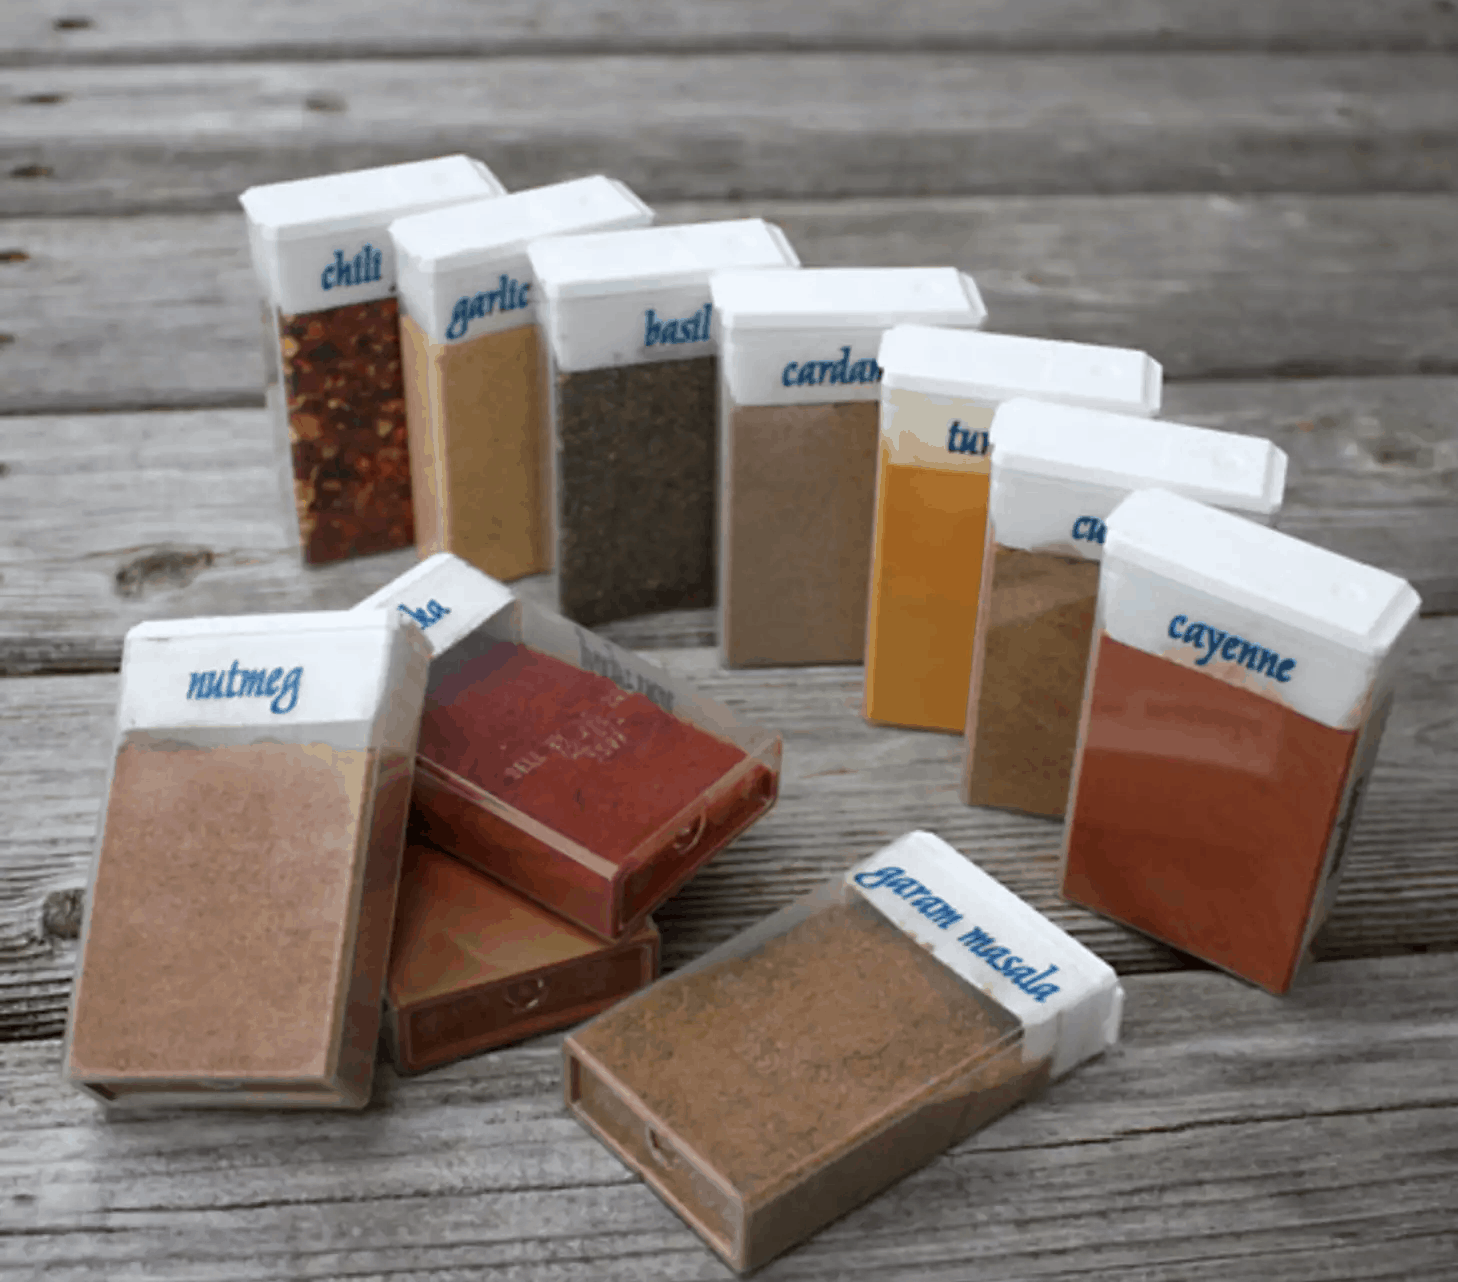 Tic tac container spice shakers